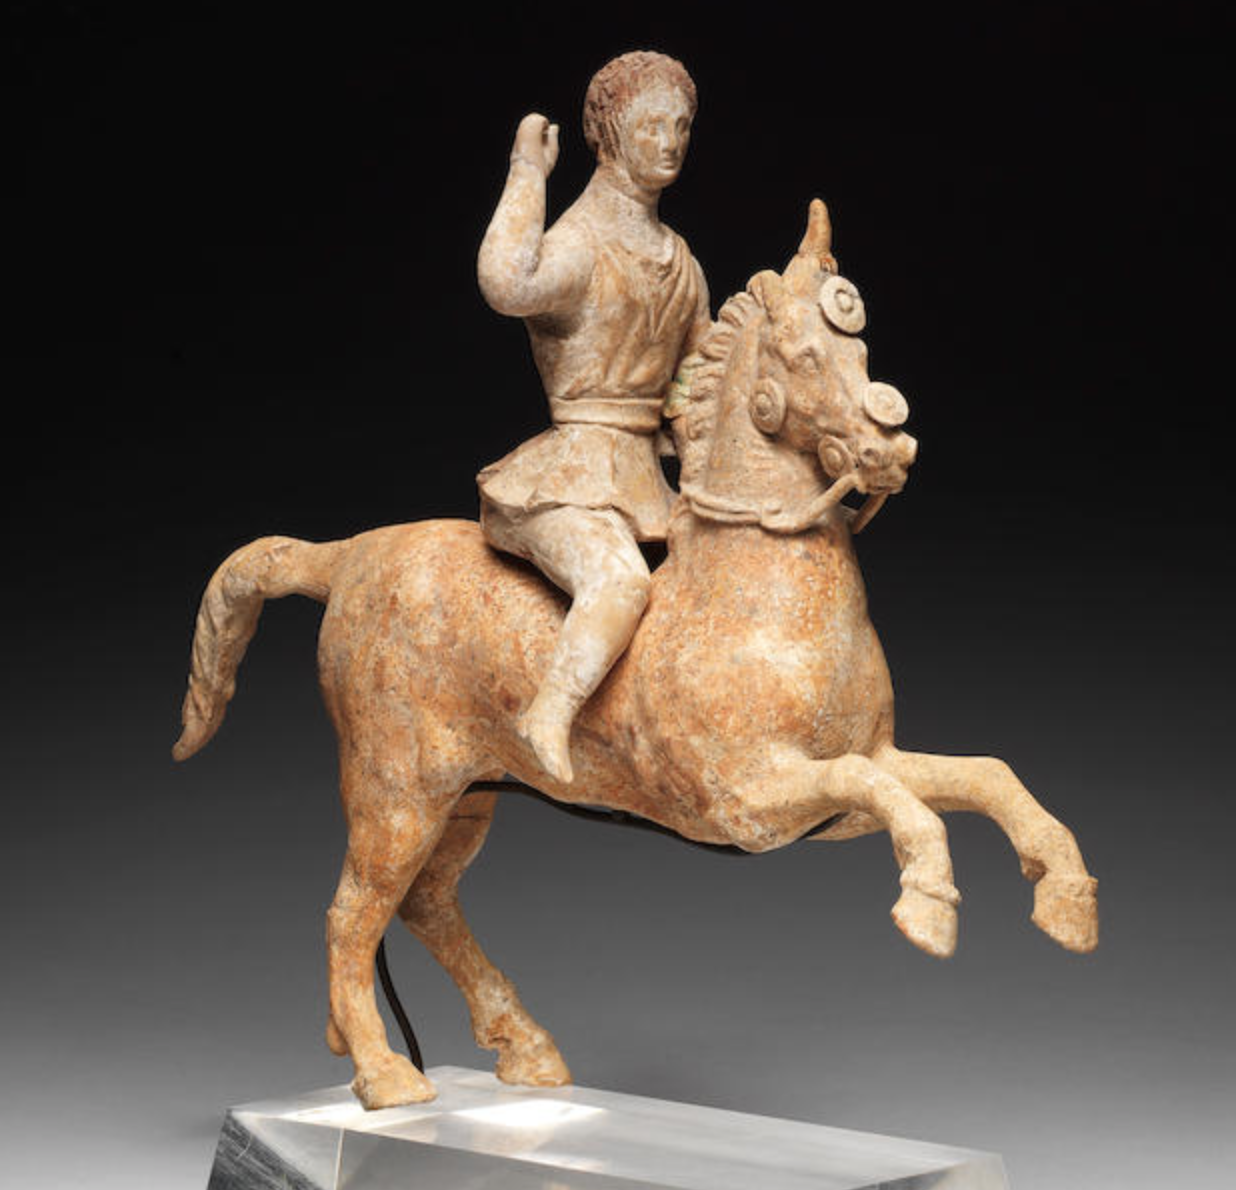 Terracotta horse and rider, 4th - 3rd century BC, Canosa, Apulia, Italy